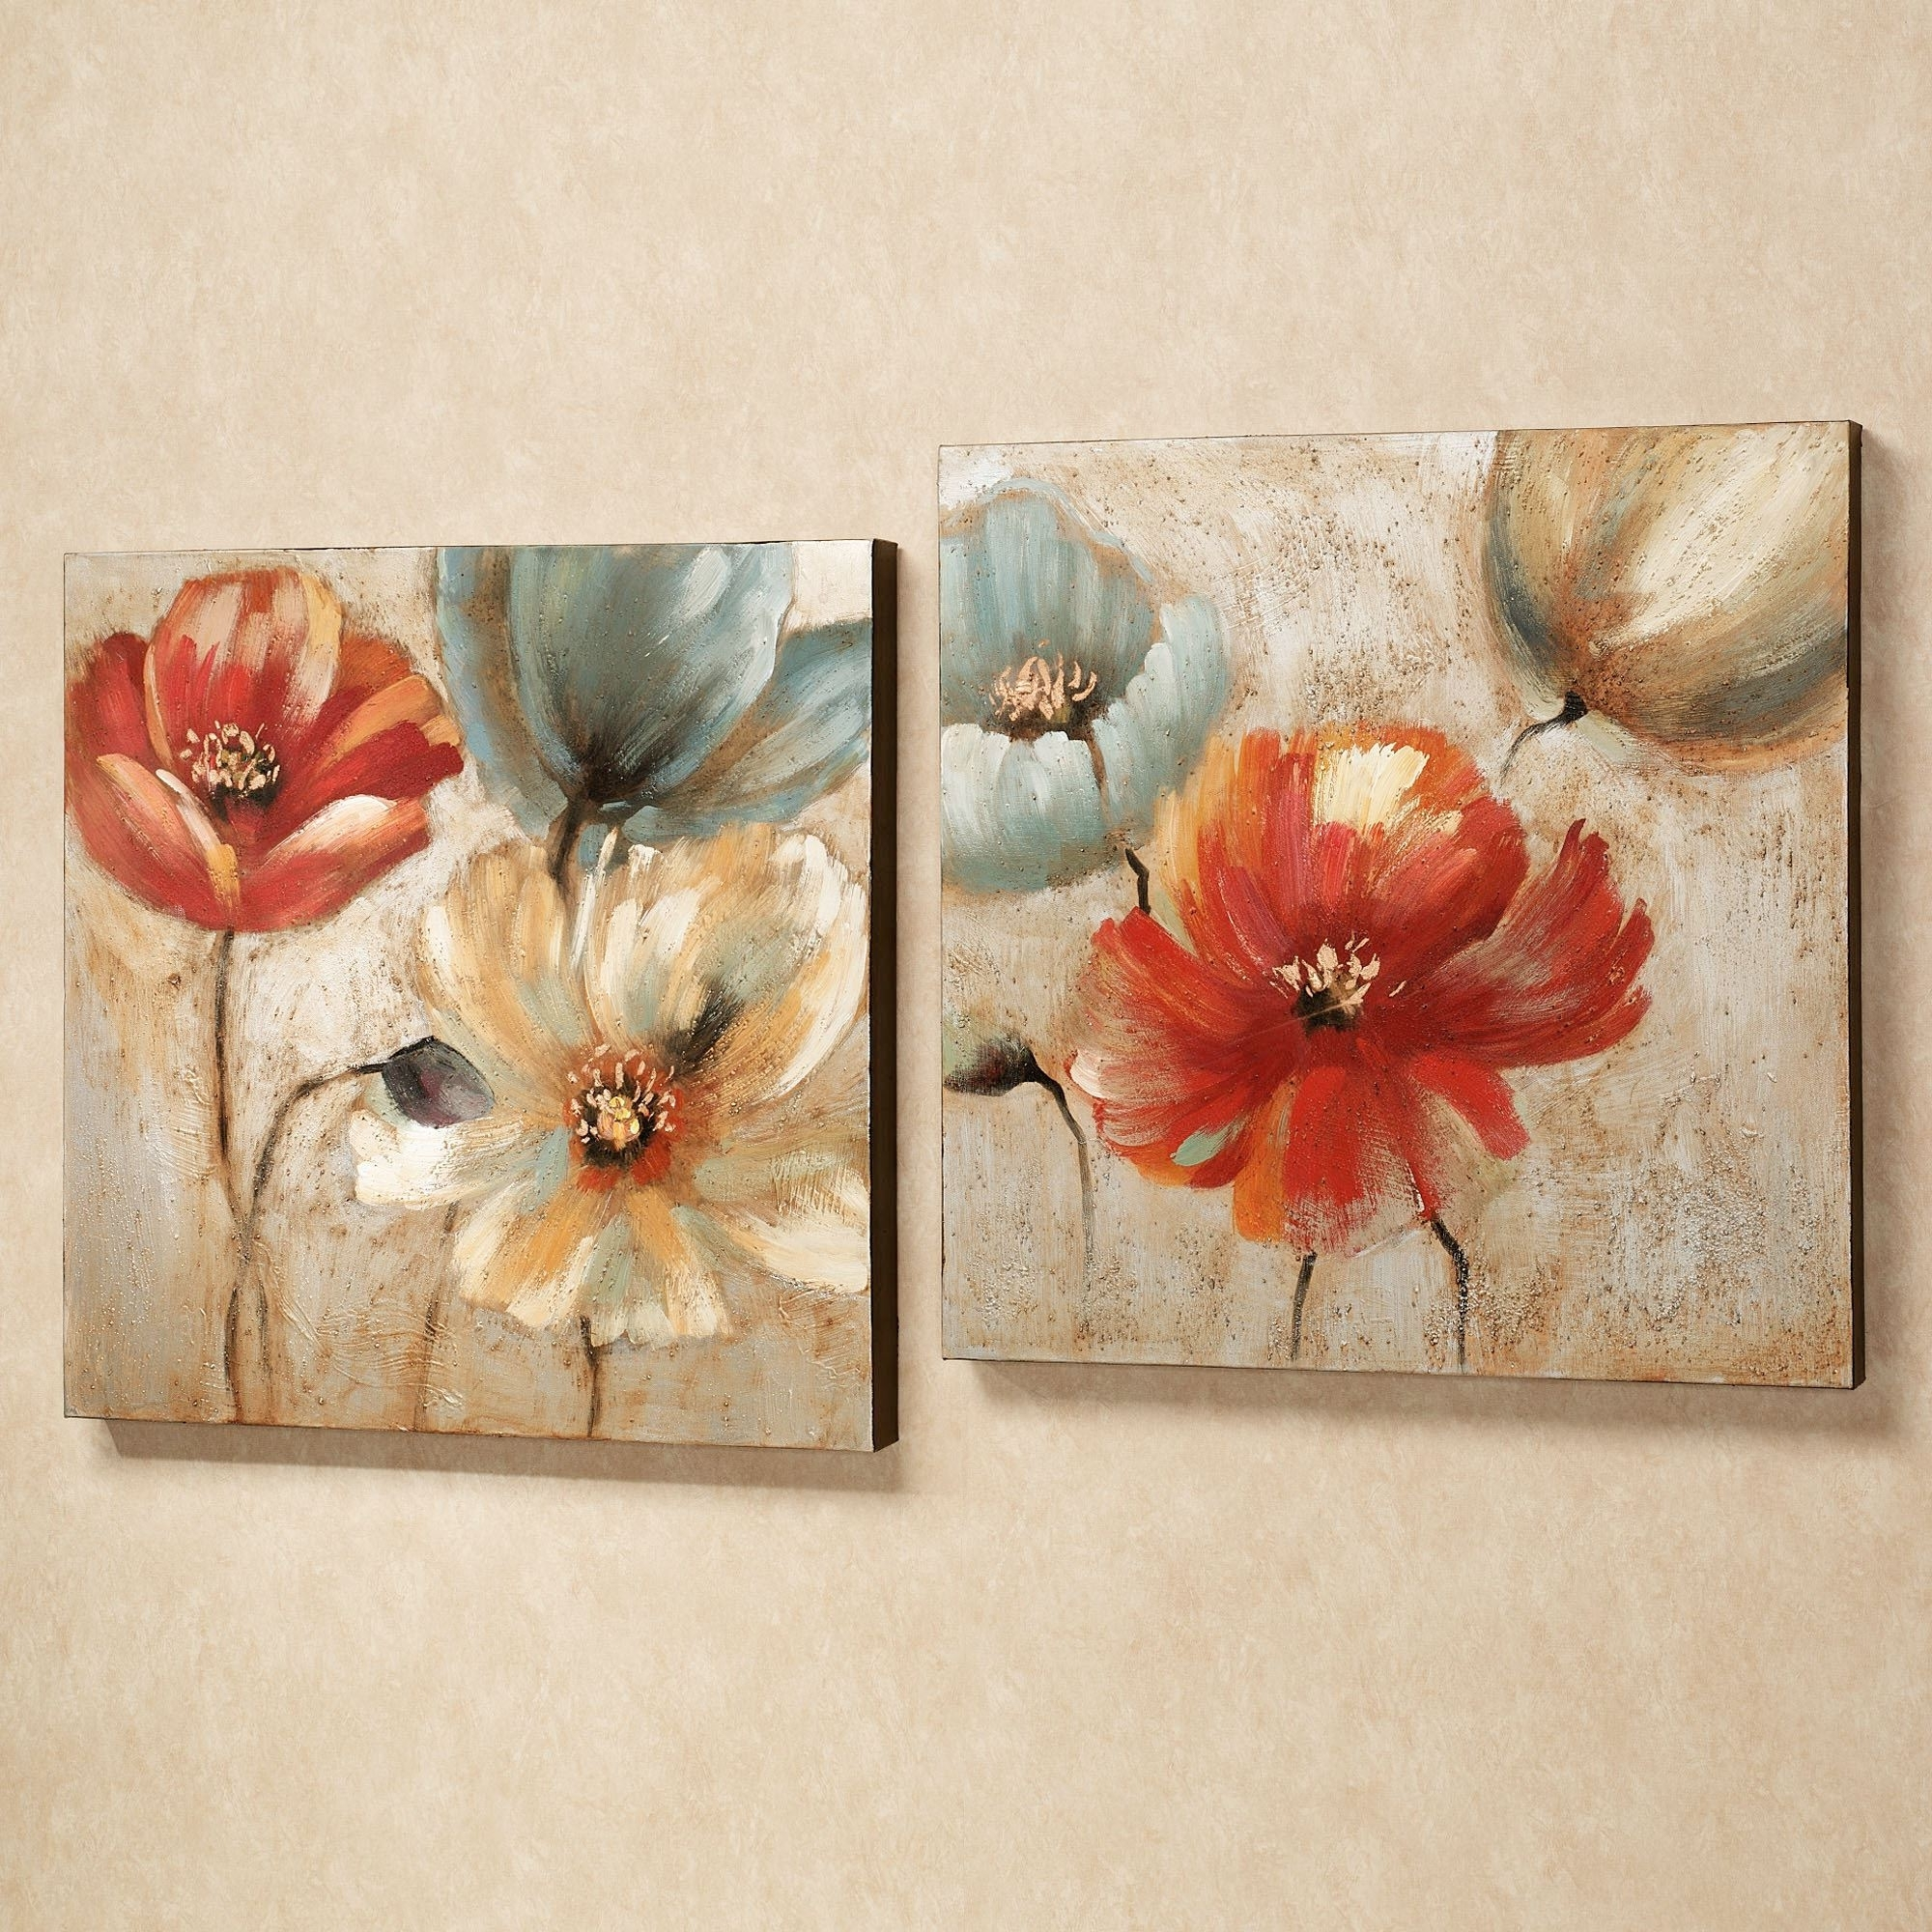 Zspmed Of Canvas Wall Art Simple With Additional Small Home Decor Pertaining To Most Popular Small Canvas Wall Art (View 15 of 15)